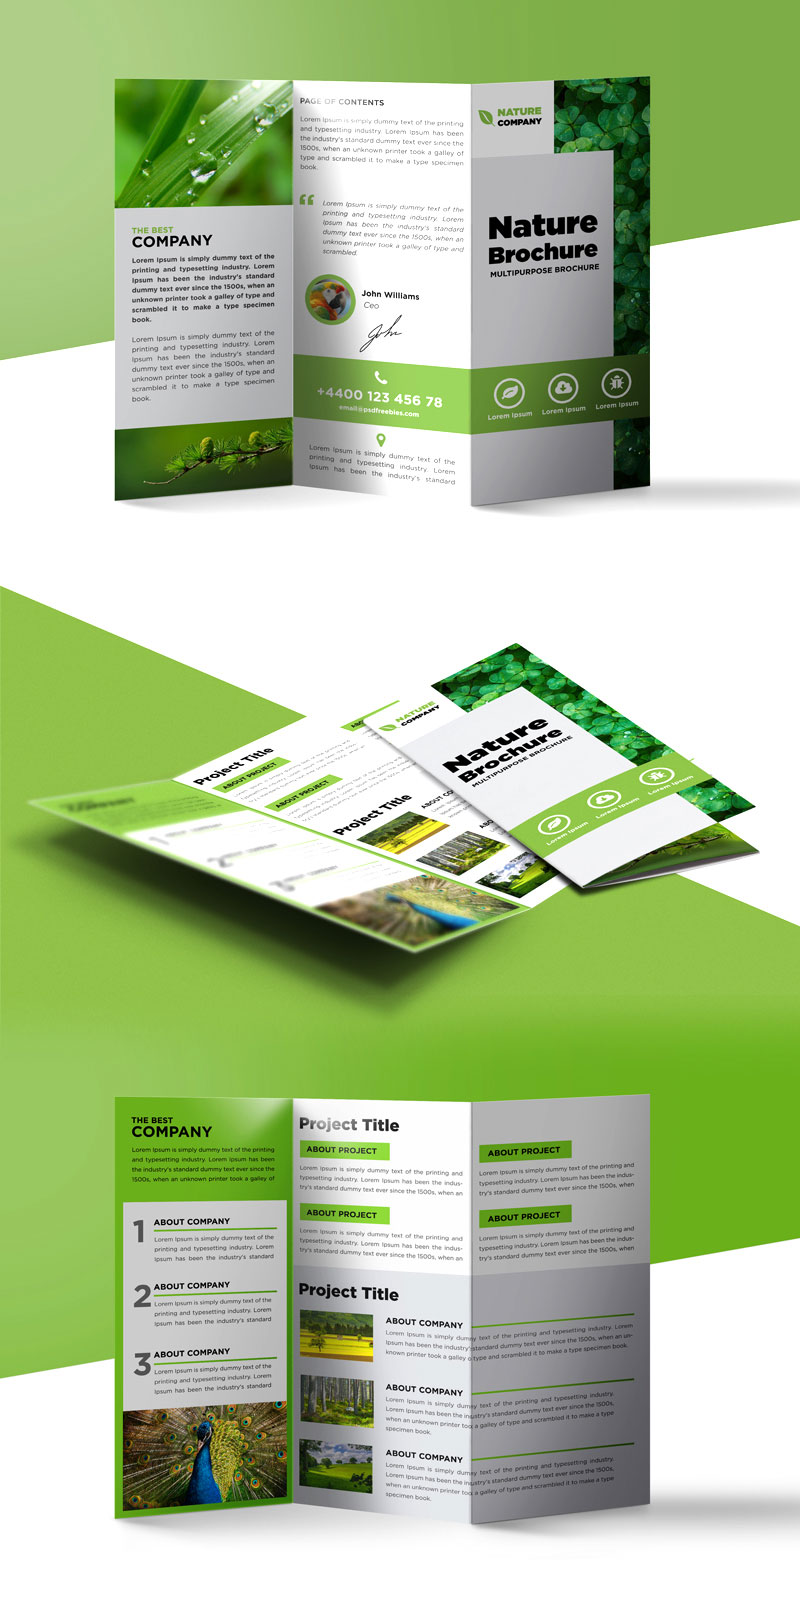 Nature tri fold brochure template free psd for Brochure folding templates